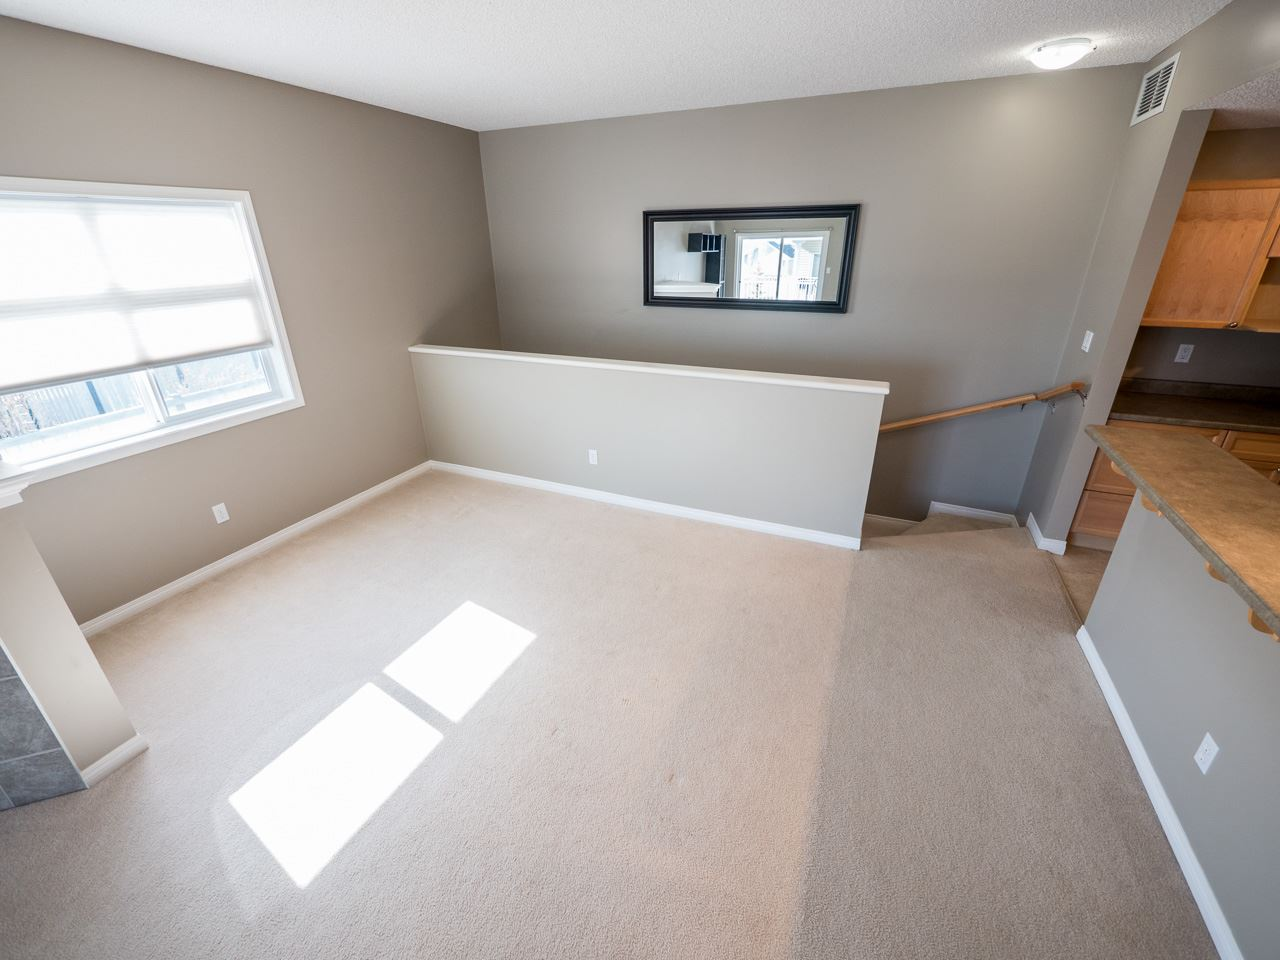 Photo 7: 71 3040 SPENCE Way in Edmonton: Zone 53 Townhouse for sale : MLS(r) # E4063695